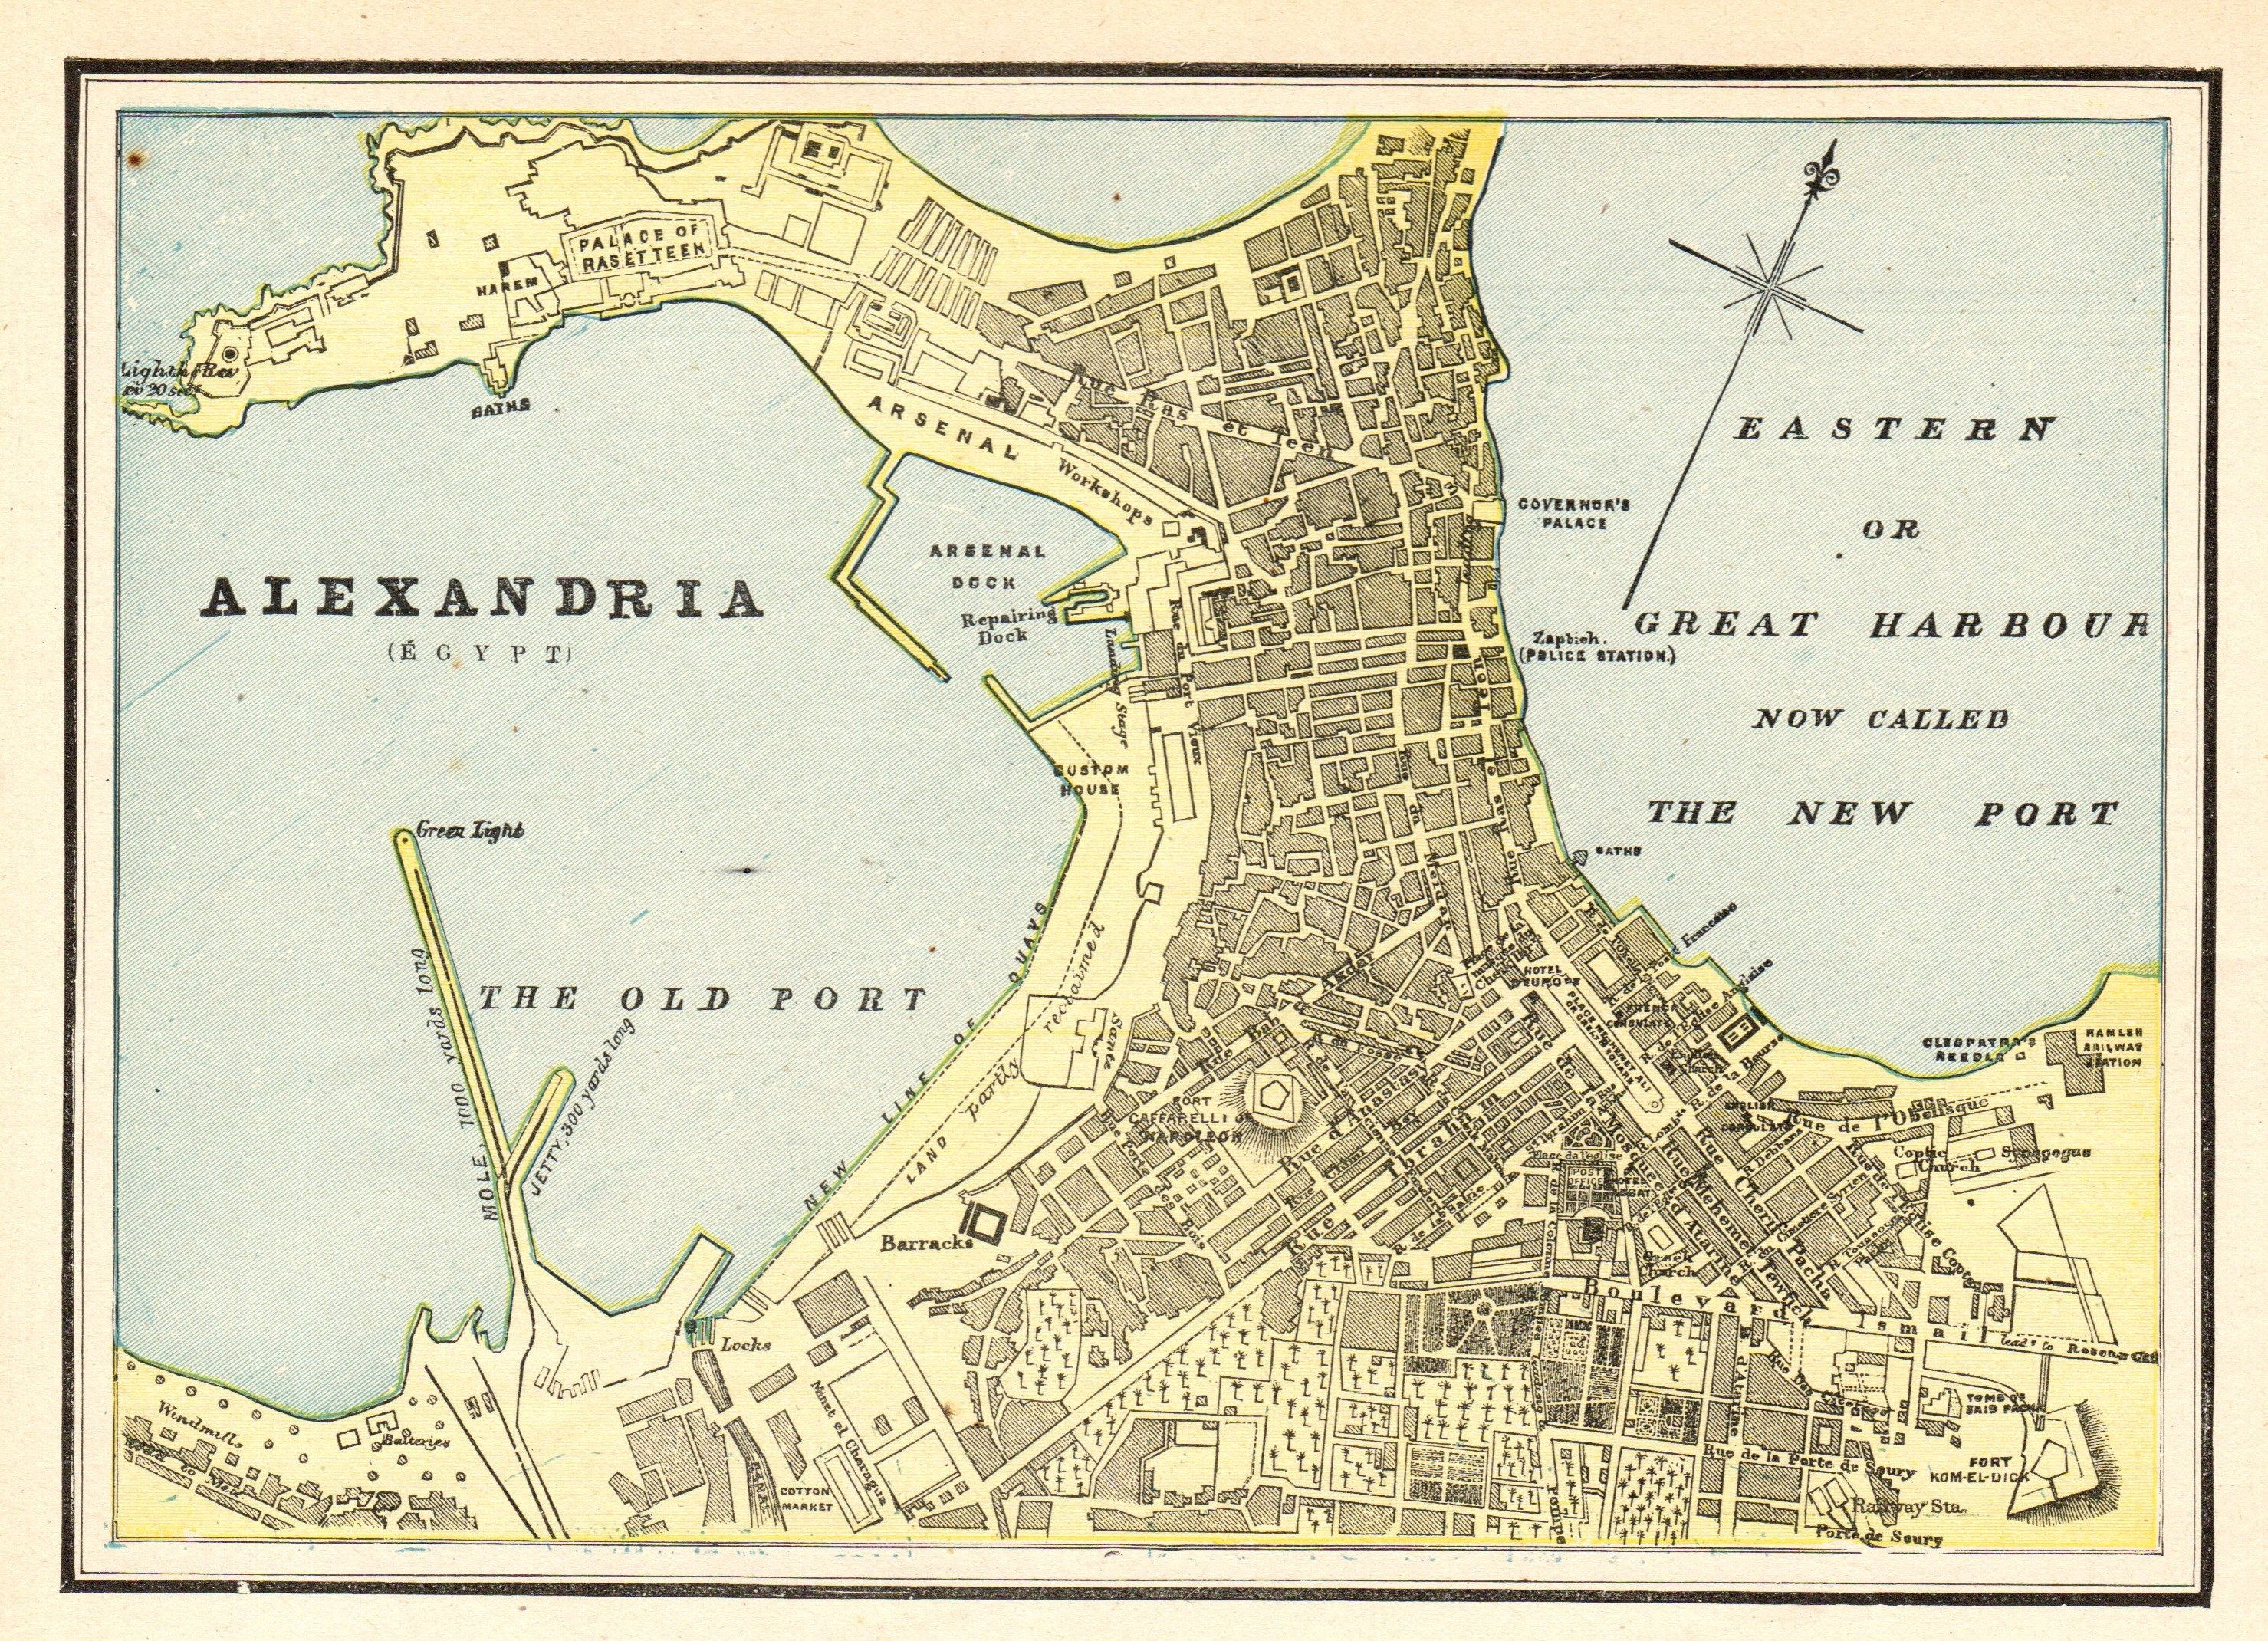 1898 Antique Alexandria Egypt Map Collectible Map Of Alexandria Gallery Wall Art Birthday Gift For Wedding Anniversary 11374 In 2020 Alexandria Egypt Alexandria Map Egypt Map